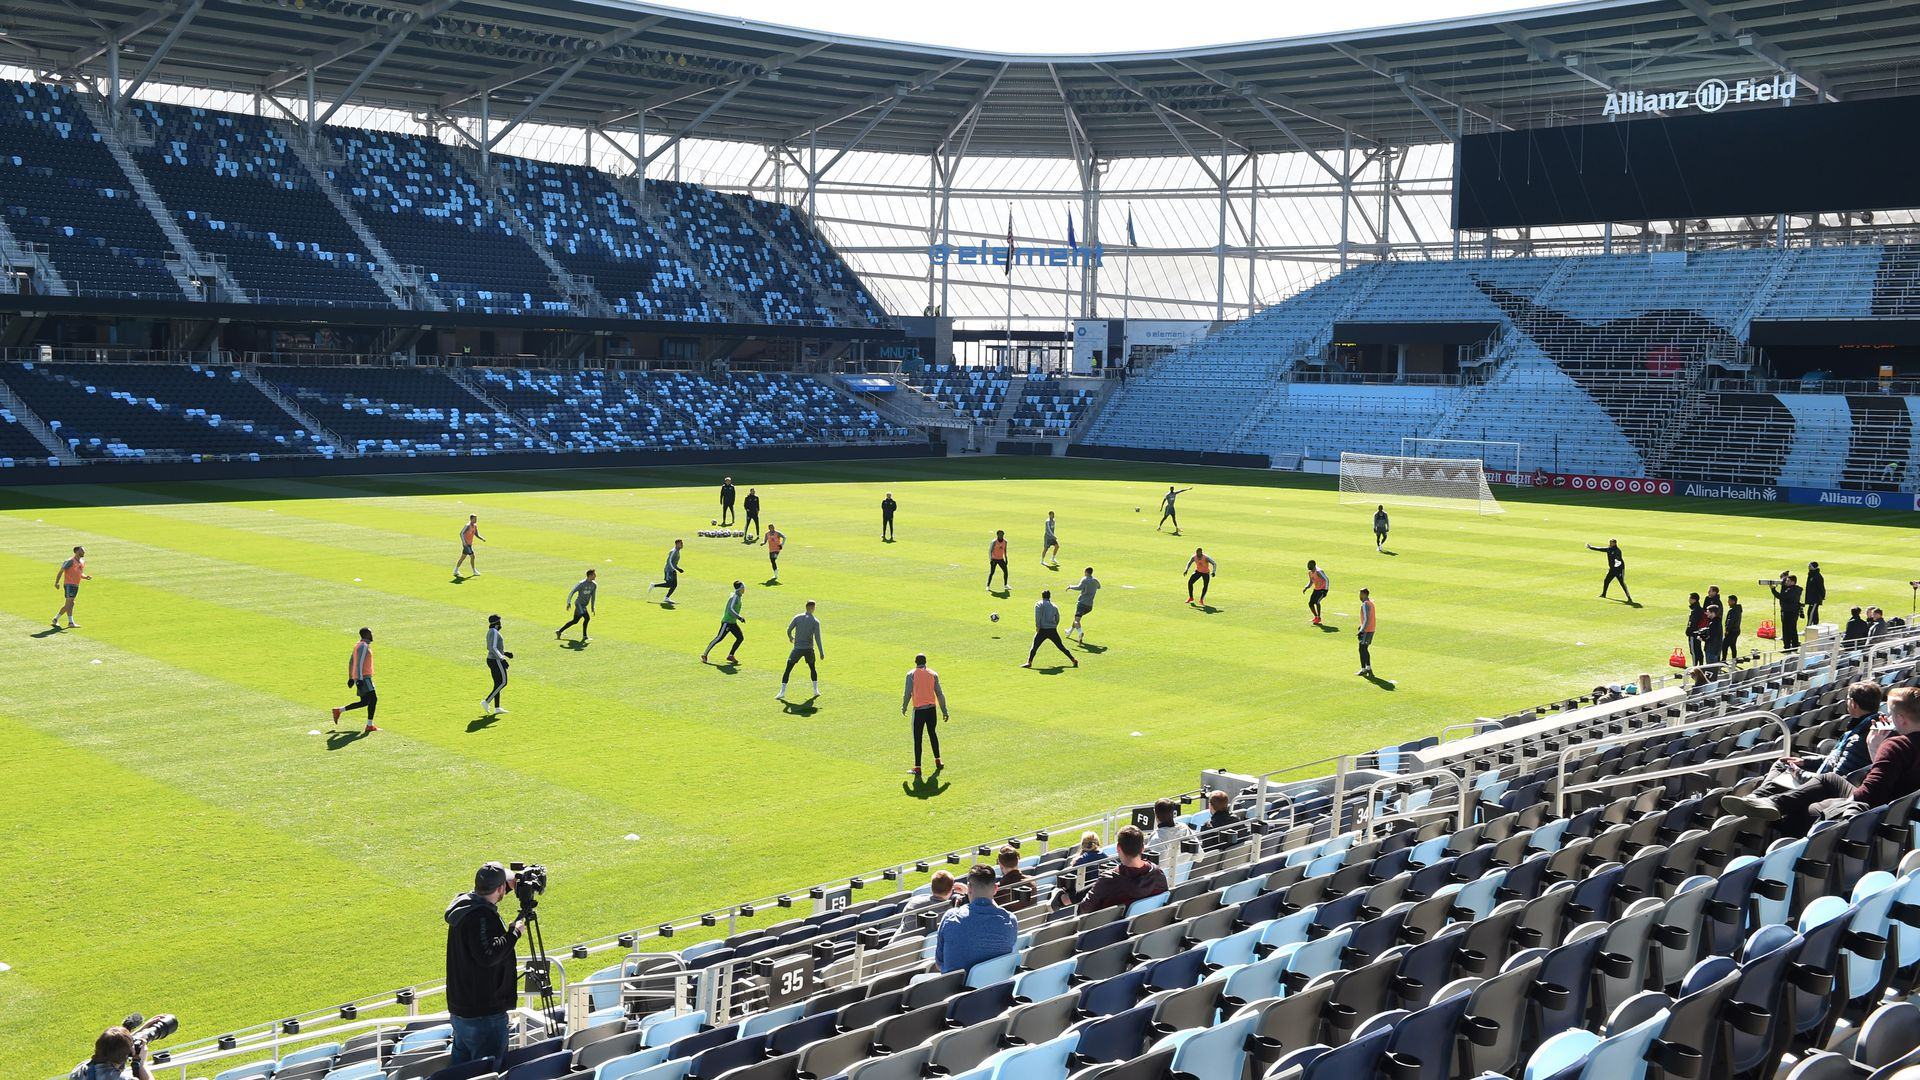 The Allianz field soccer pitch with players on green grass